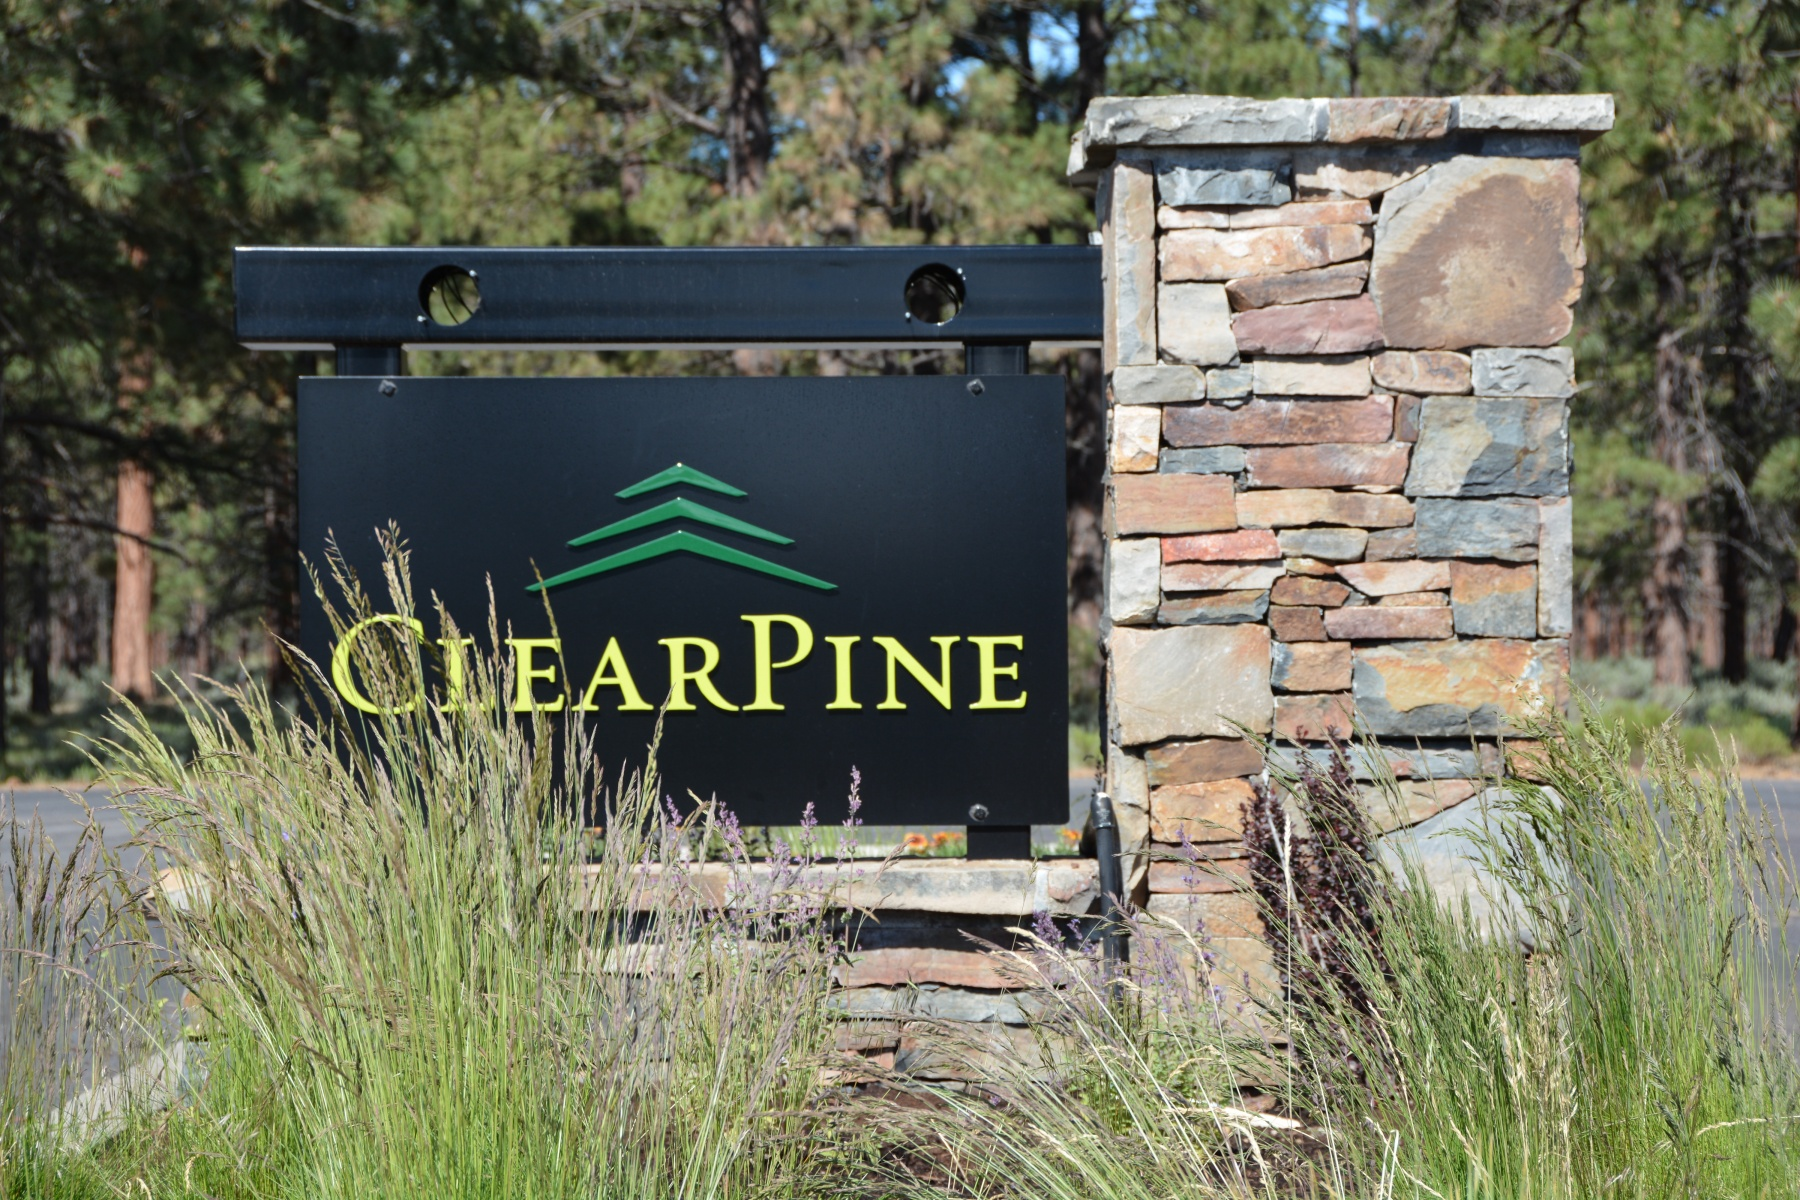 Land for Sale at Flat Build Ready Lot in ClearPine! 0 Heising Dr Lot 25 Sisters, Oregon, 97759 United States